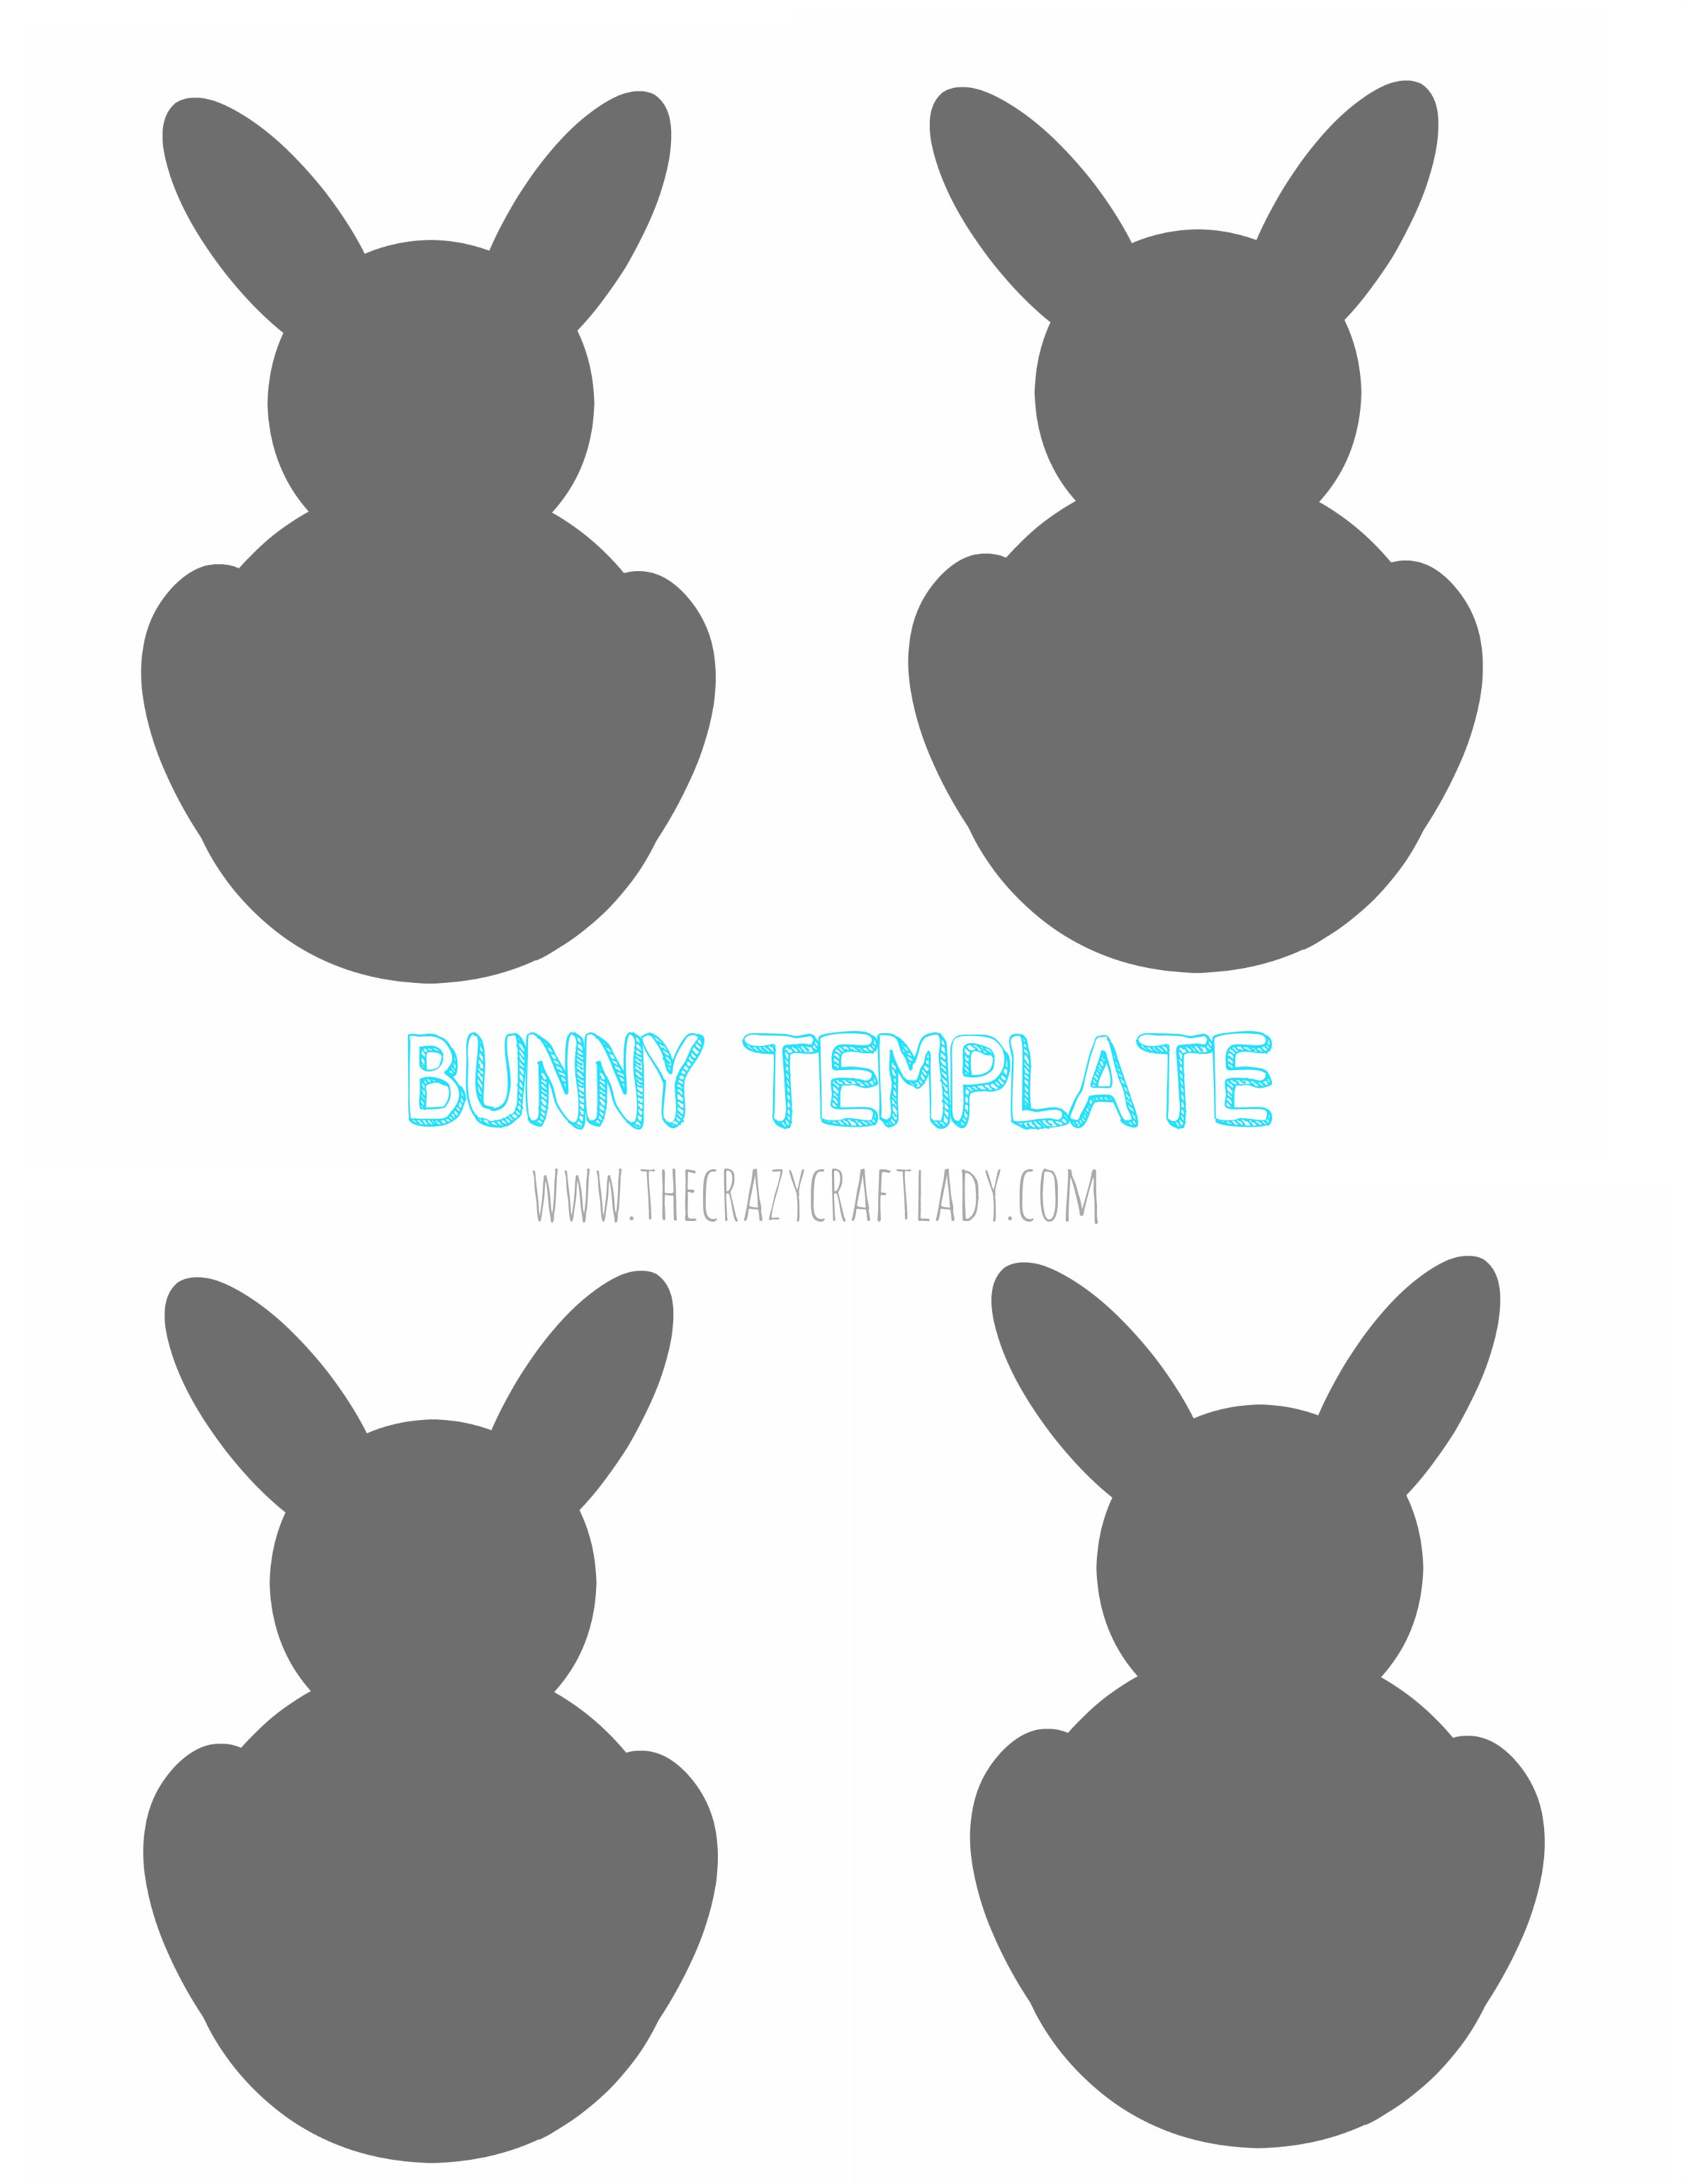 graphic regarding Easter Bunny Templates Printable Free known as Straightforward Easter Bunny Garland PB-Motivated - The Insane Craft Woman